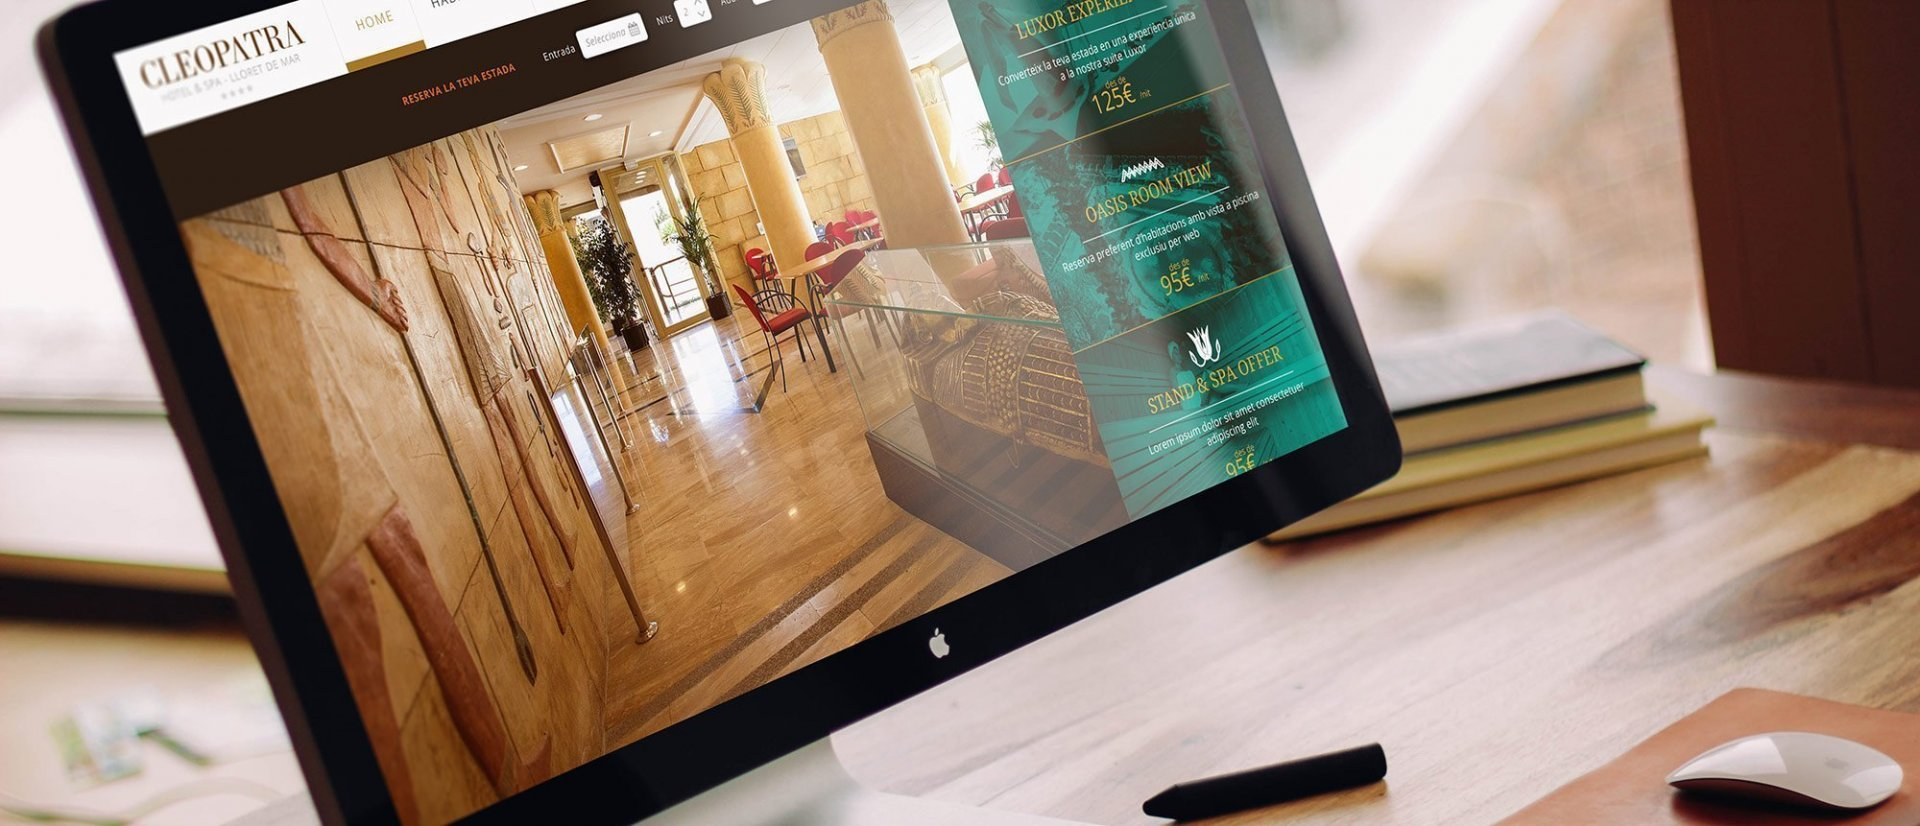 Four Star SPA hotel web development